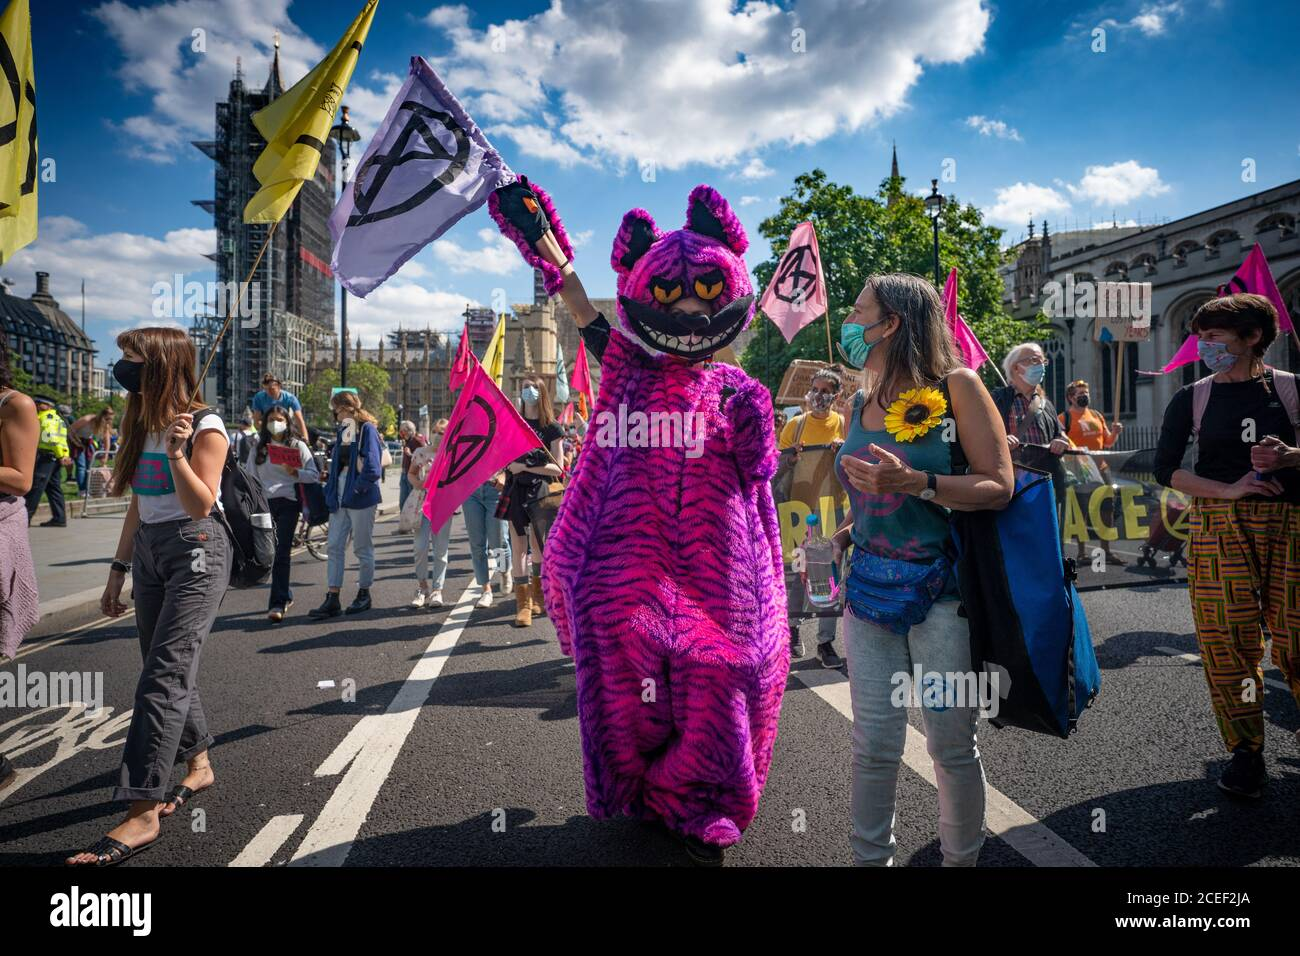 London, UK. Tuesday, September 1, 2020. London, UK. Tuesday, September 1, 2020. A protest by Extinction Rebellion in Parliament Square in London in support of the Climate and Ecological Emergency (CEE) Bill. Photo: Roger Garfield/Alamy Live News Stock Photo